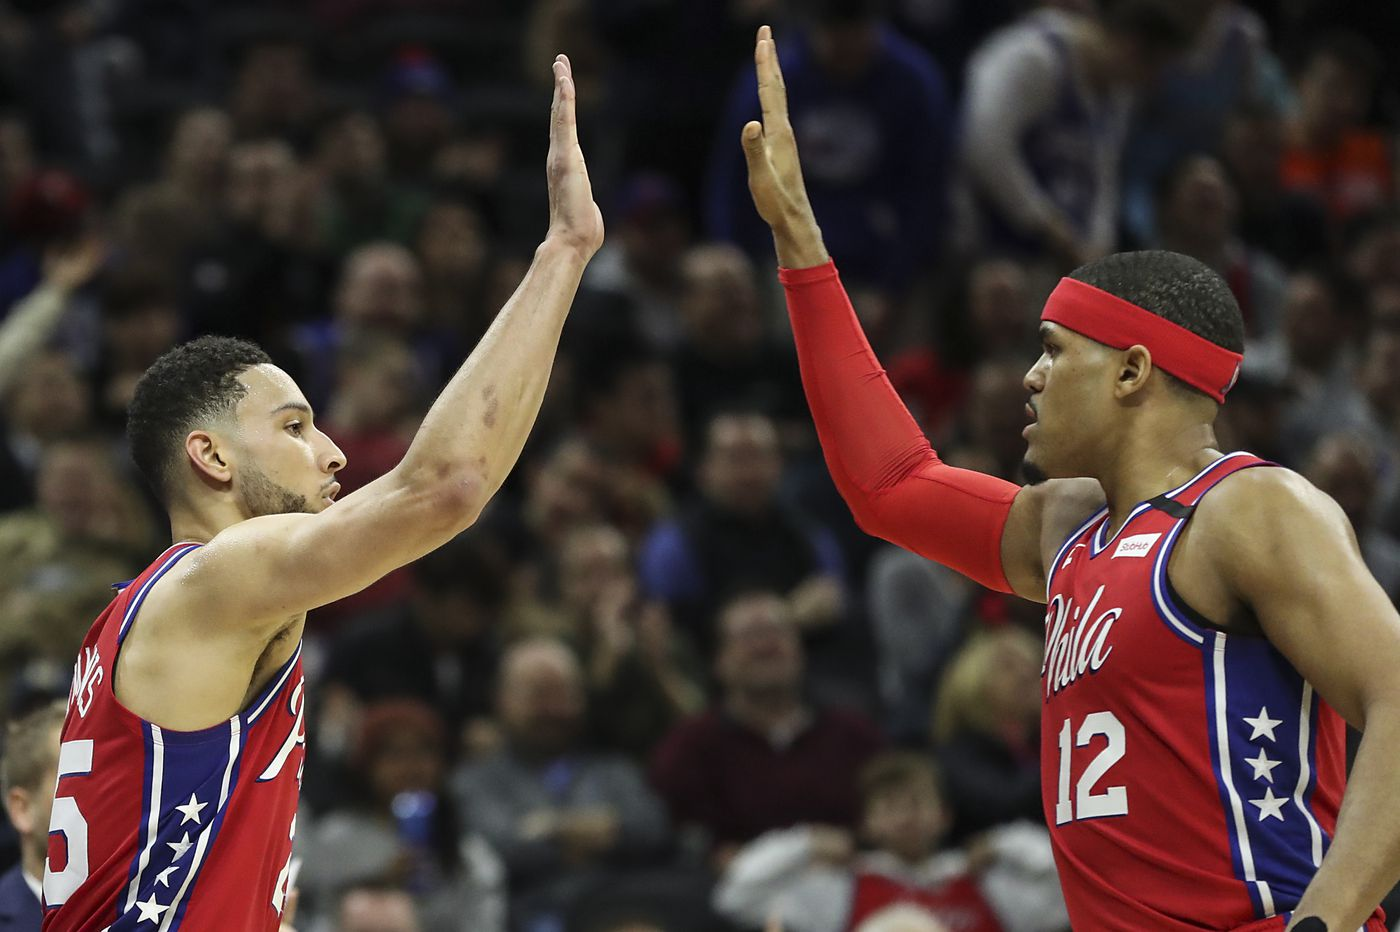 Sixers podcast: Tobias Harris, Ben Simmons have every right to speak their minds about social issues